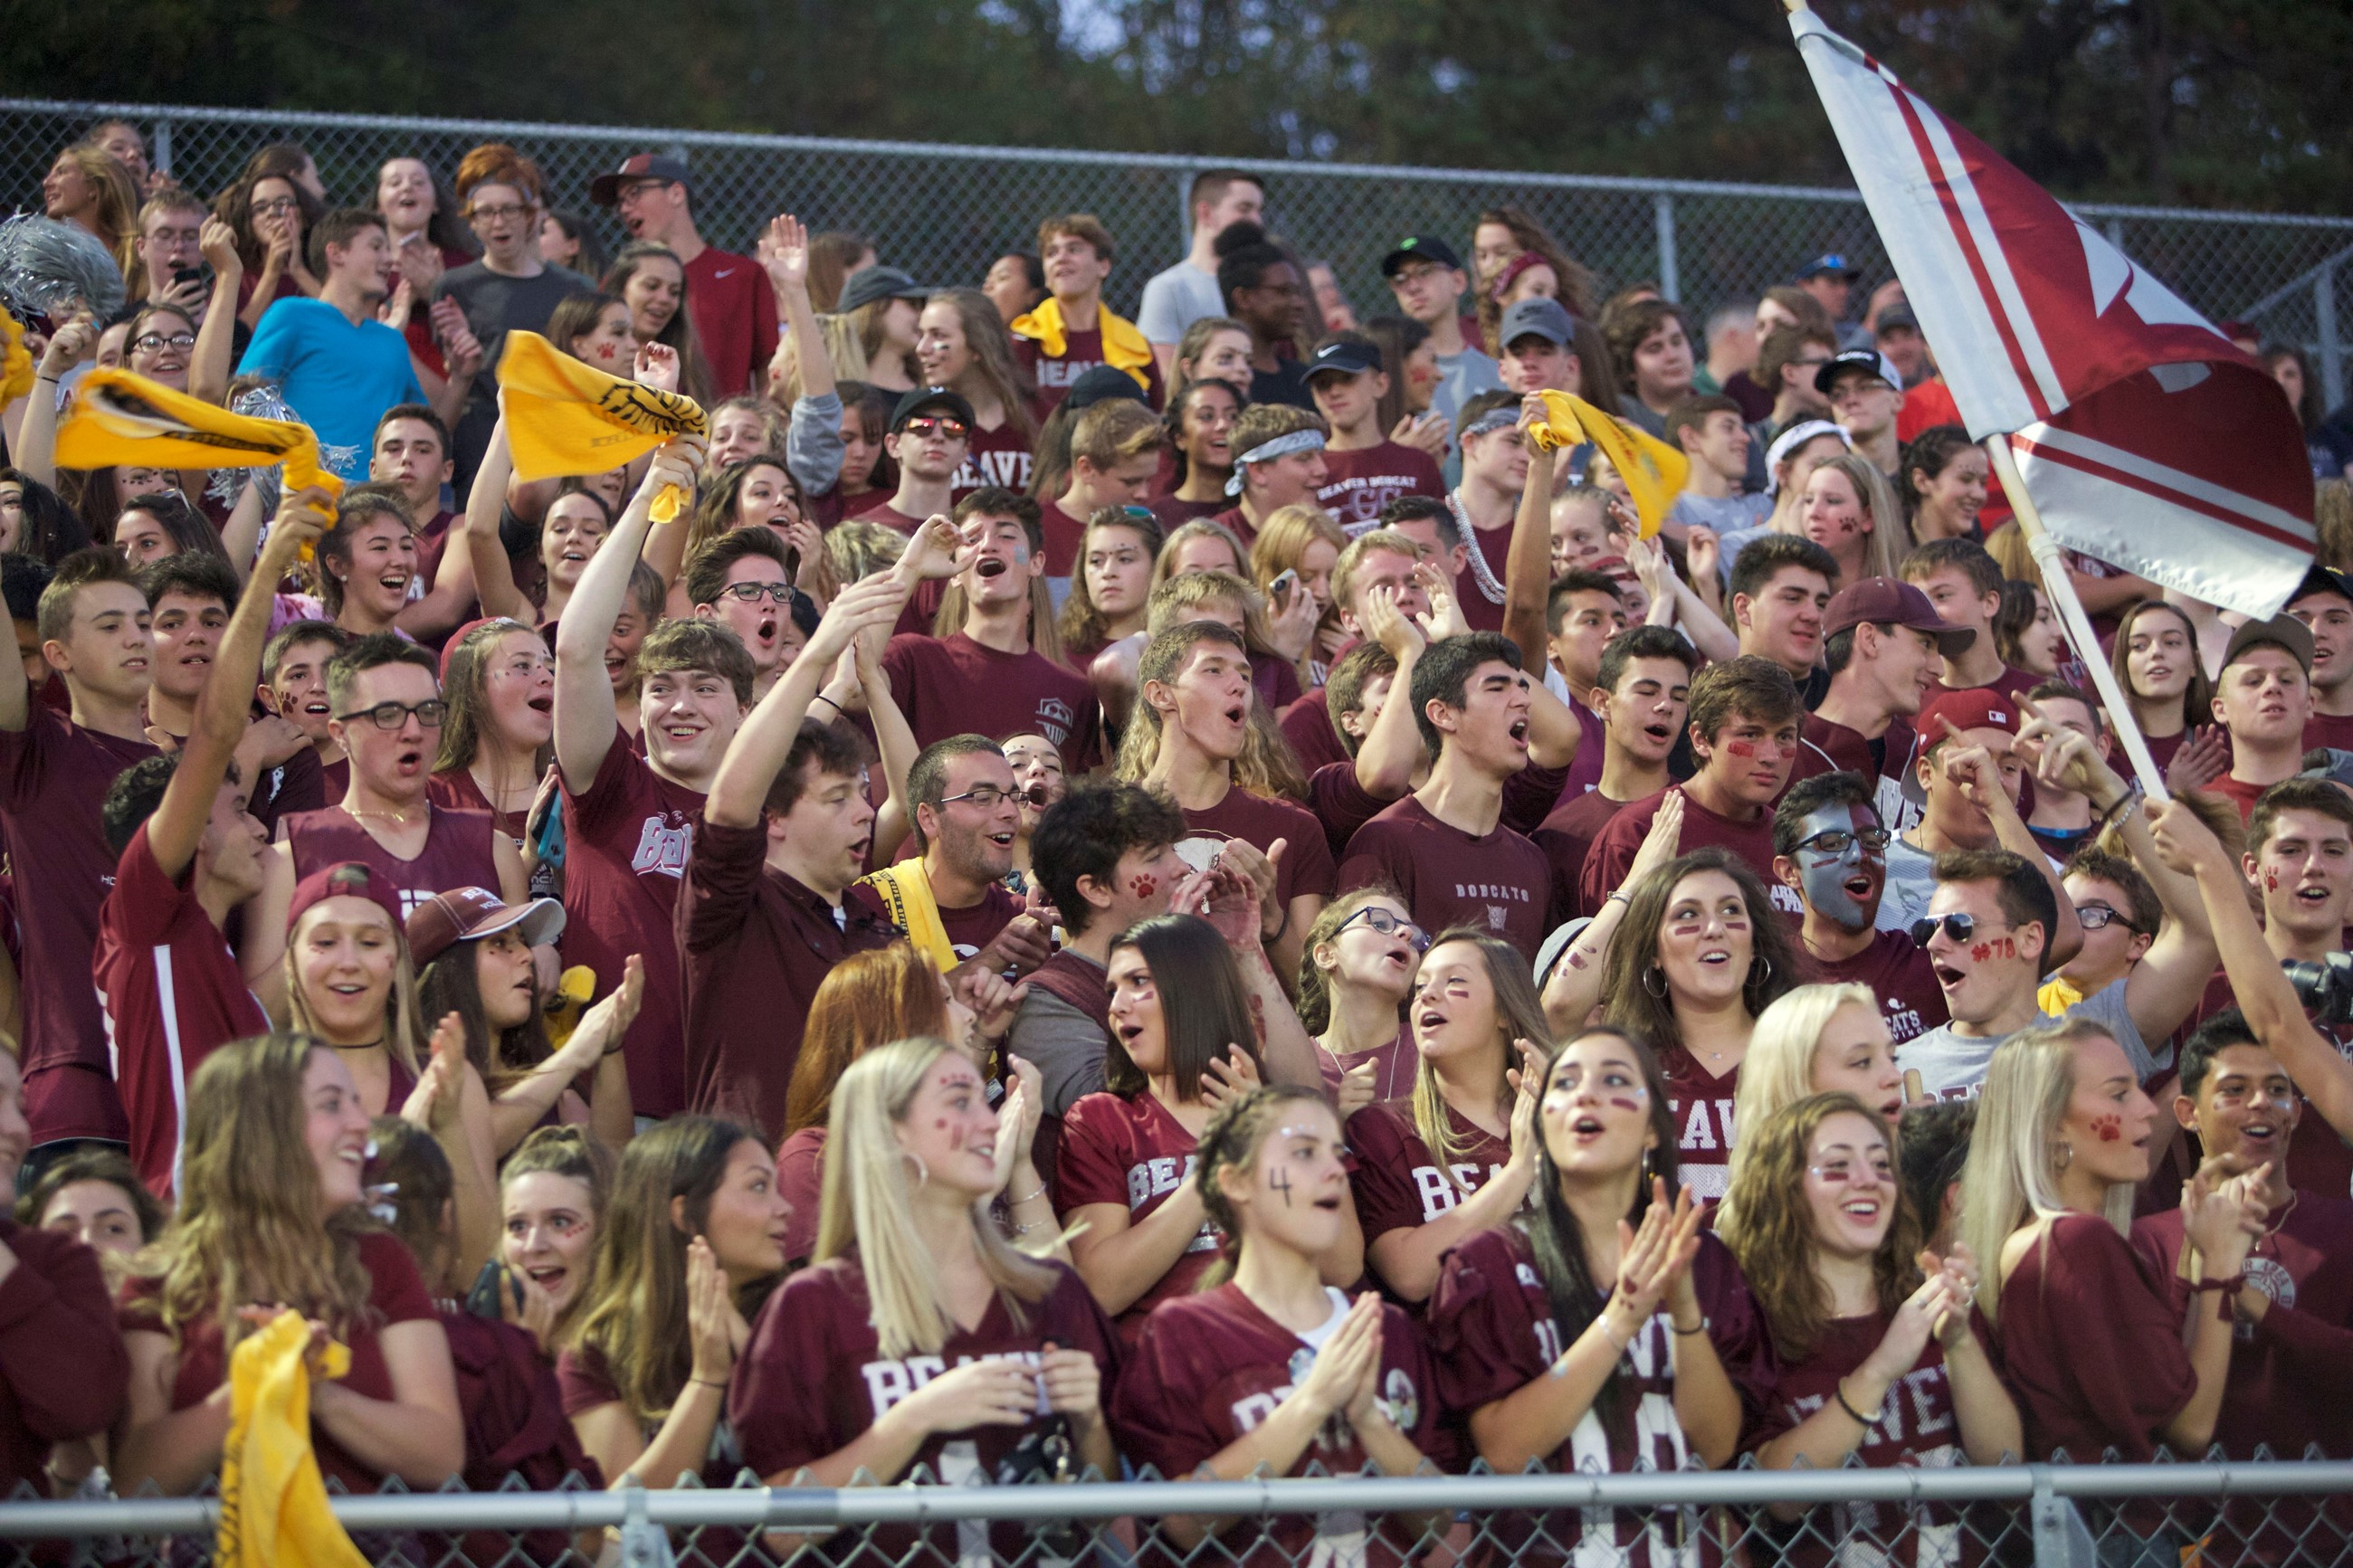 Student cheering section at the Homecoming football game